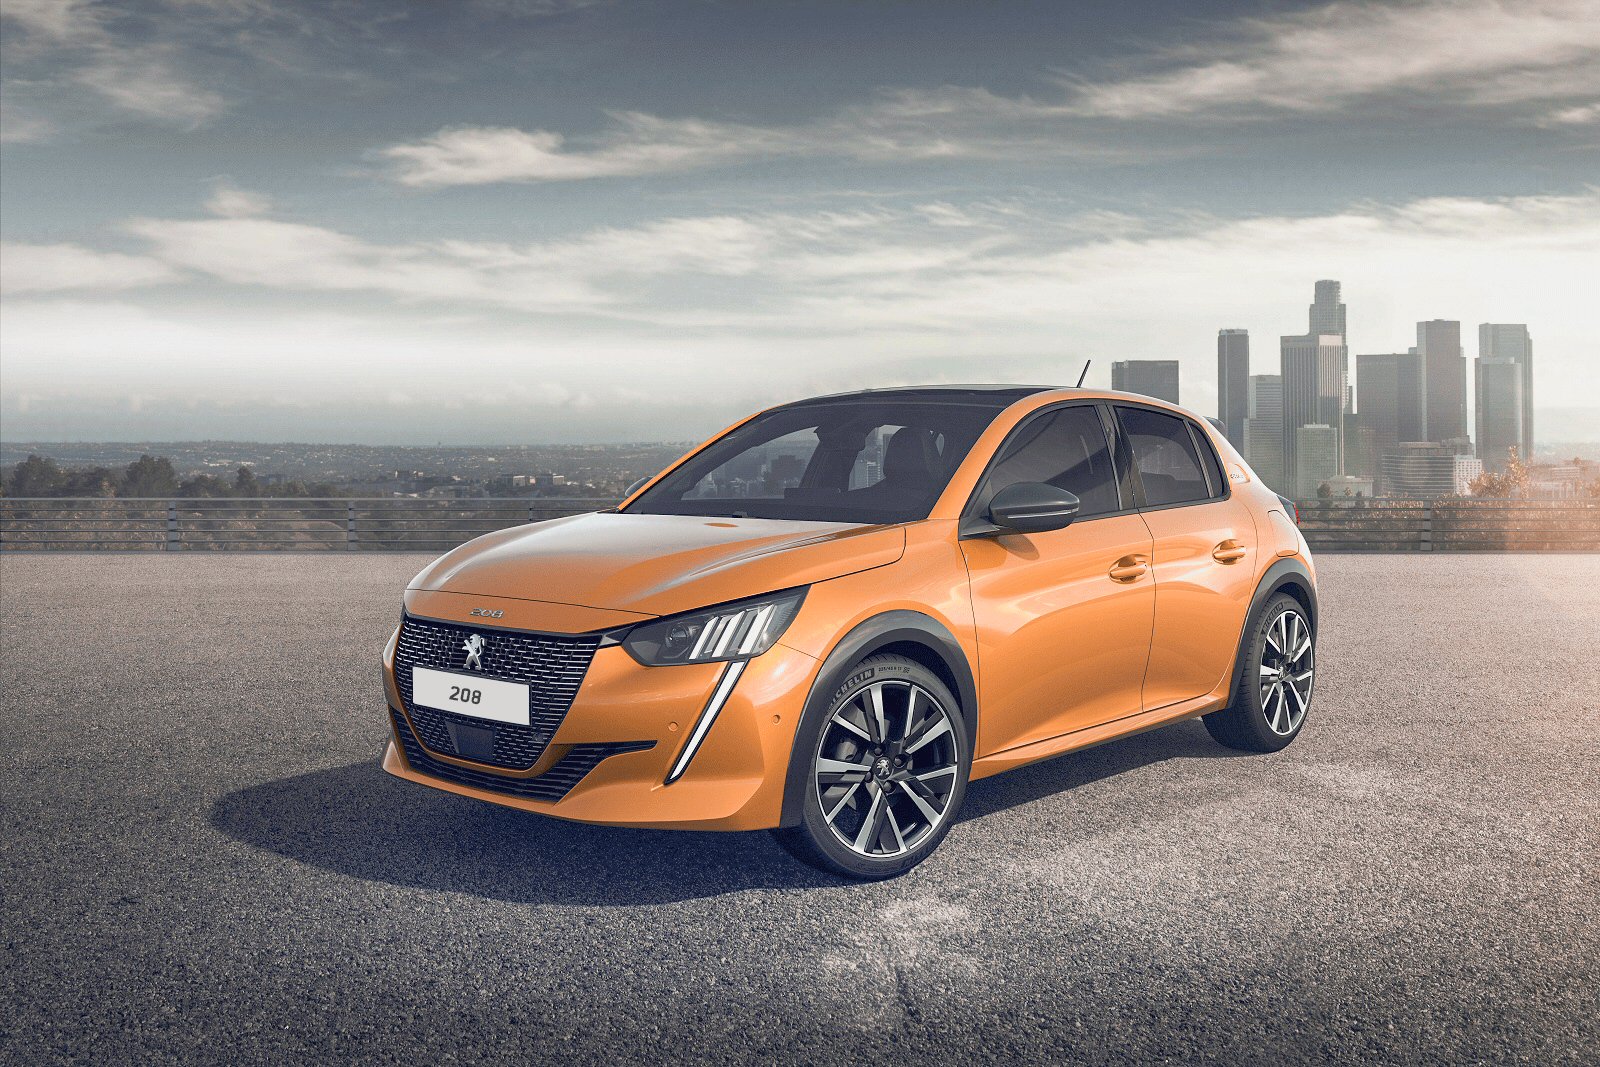 peugeot-208-first-time-car